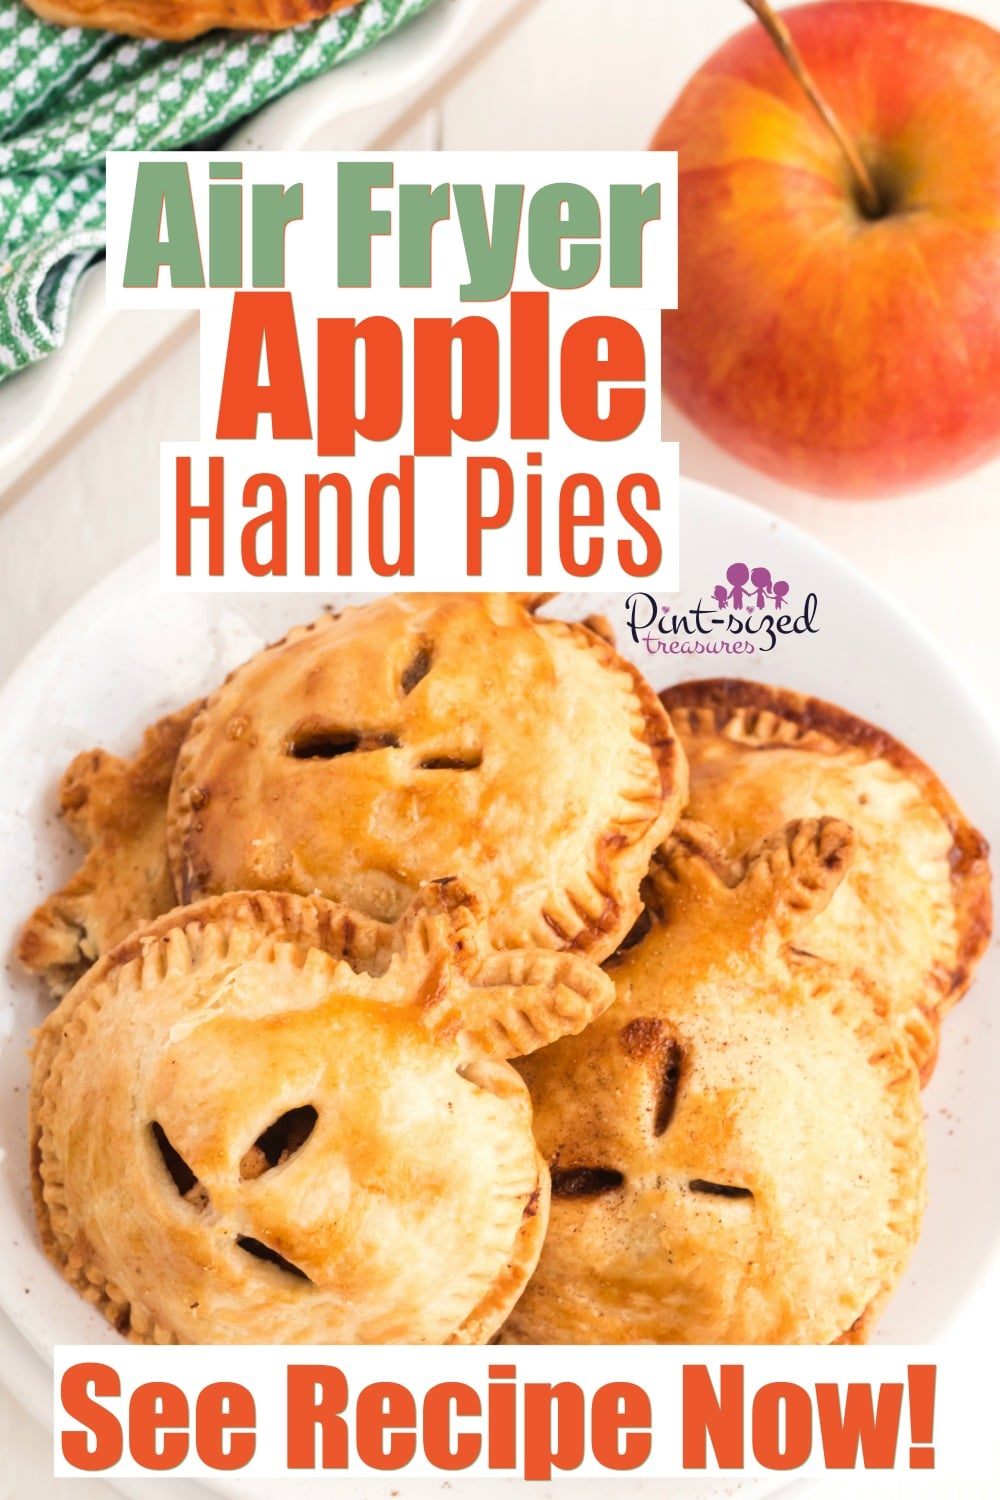 Air fryer hand pies with apple filling